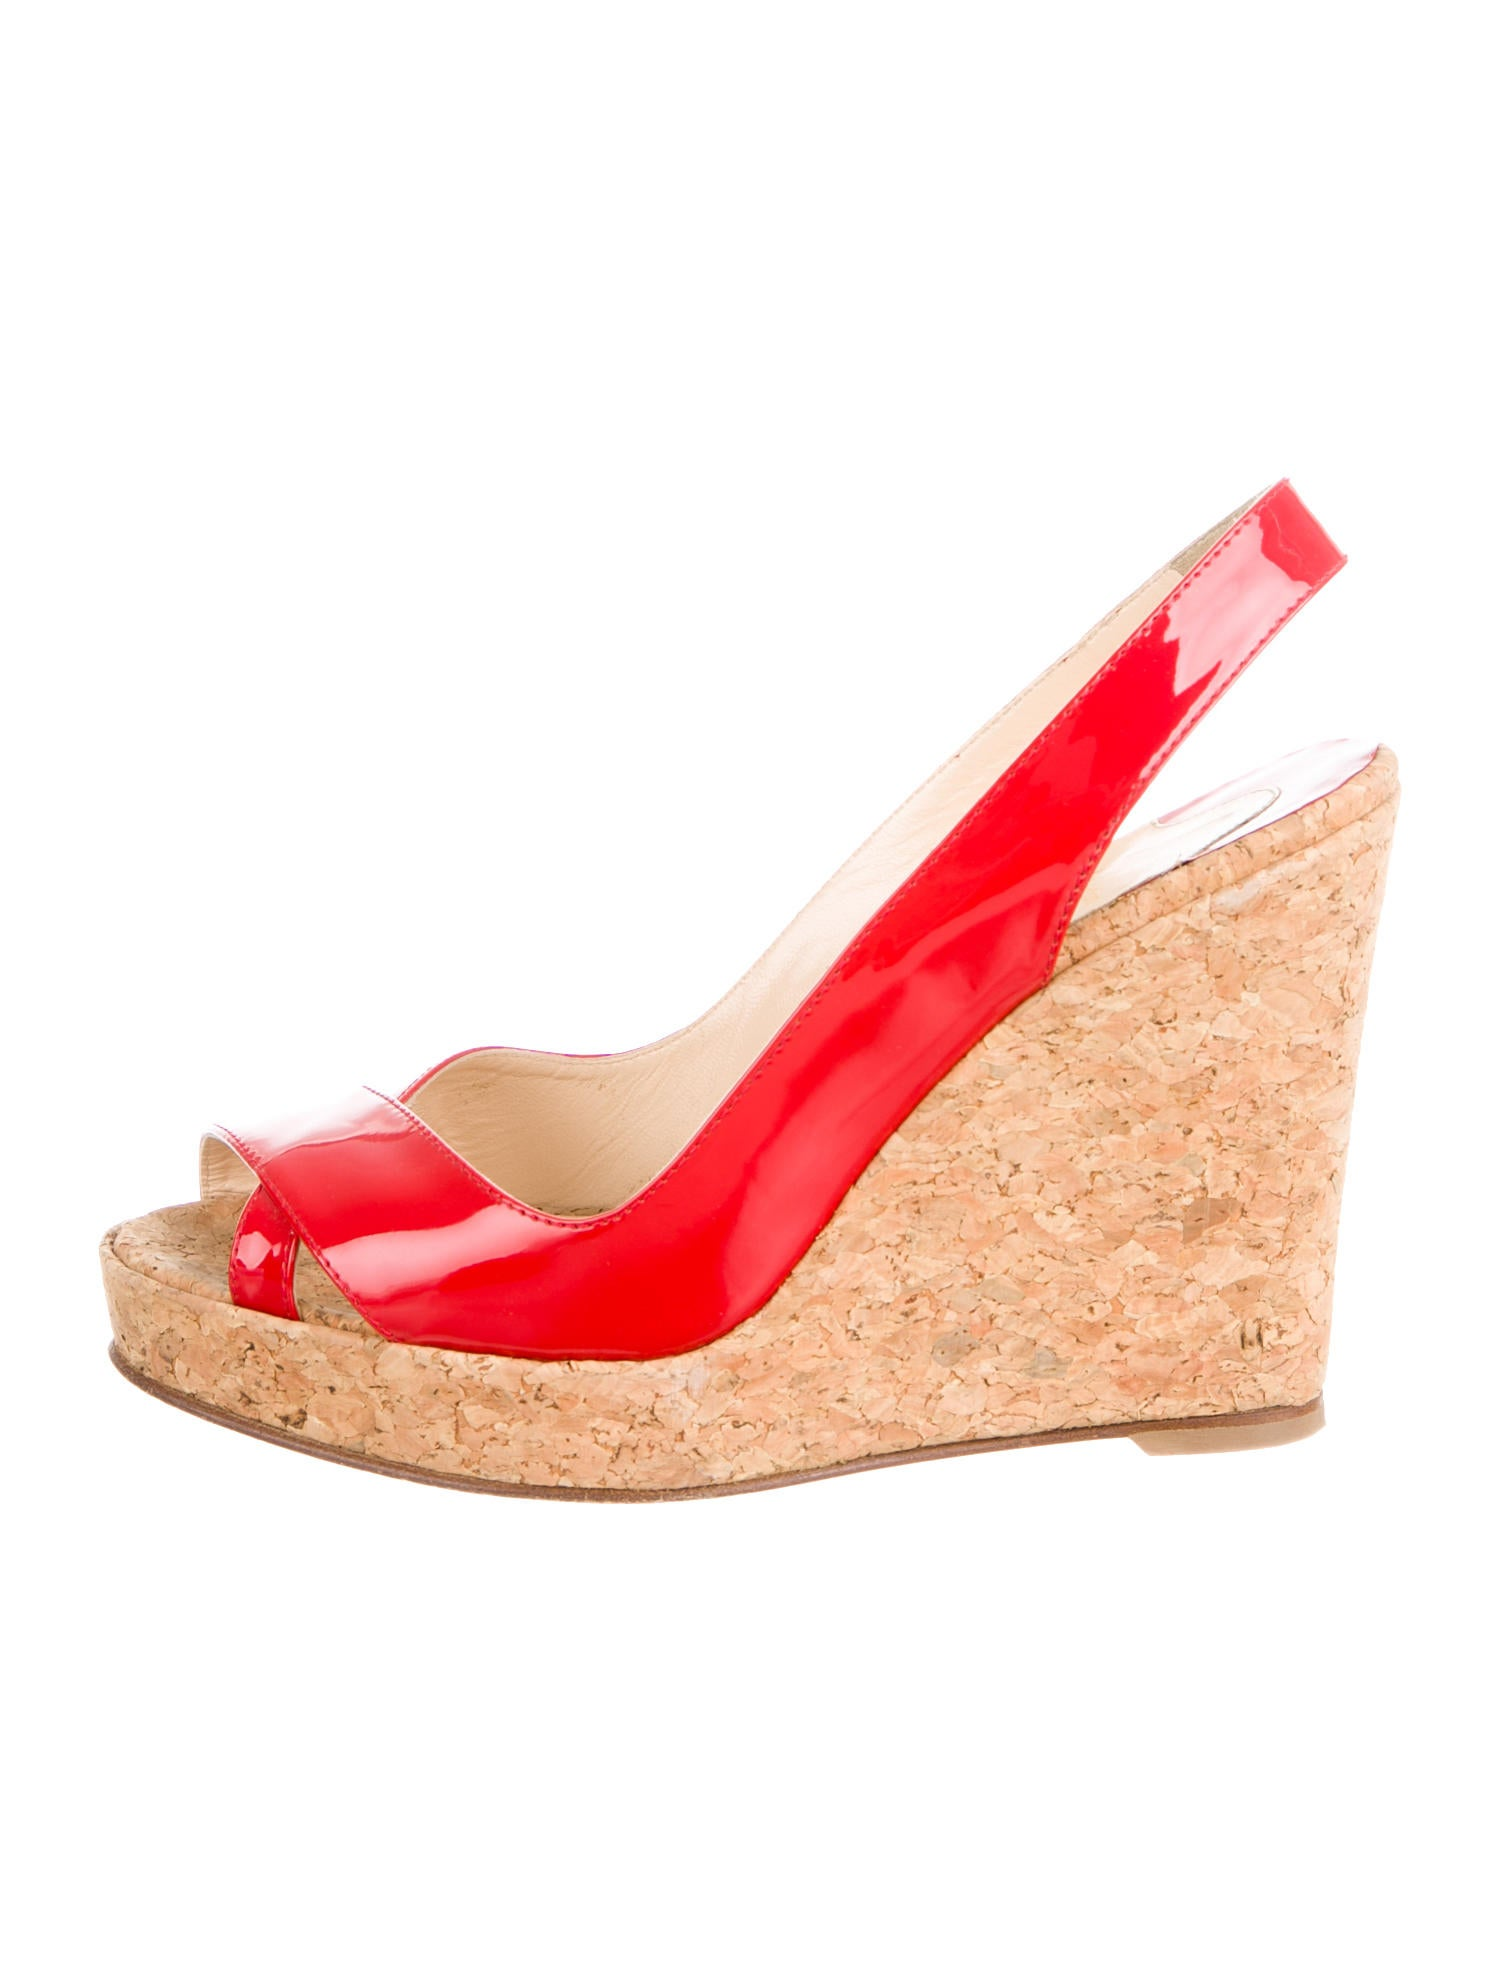 christian louboutin knockoffs usa - Artesur ? christian louboutin peep-toe slingback wedges Orange ...